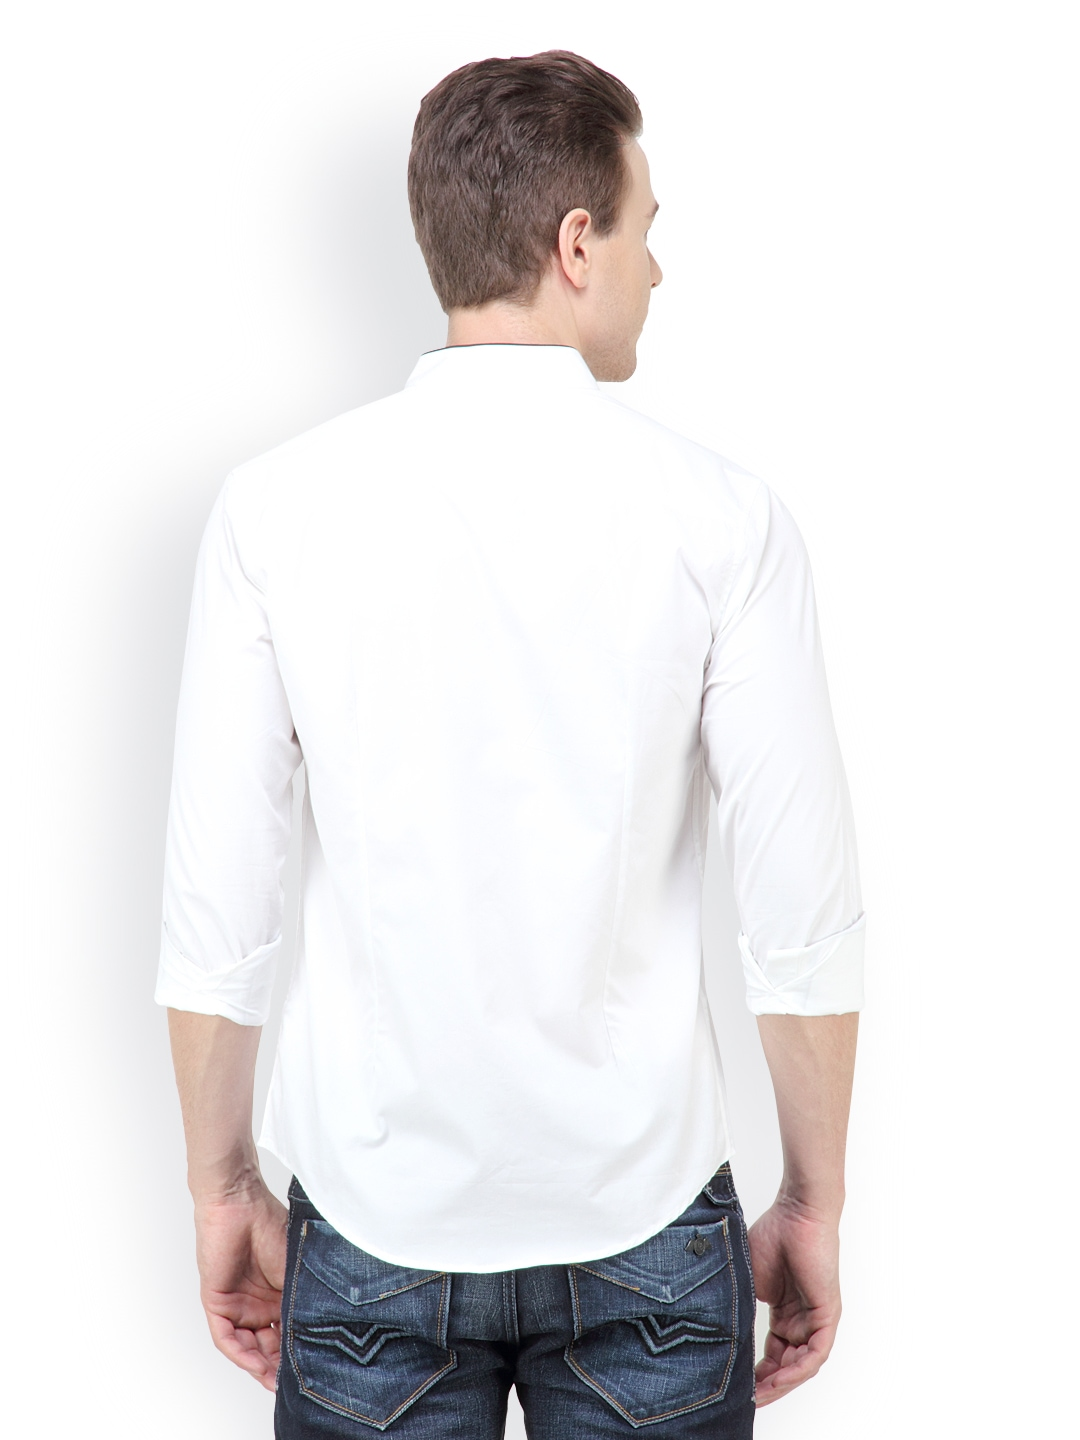 Shirt design online india